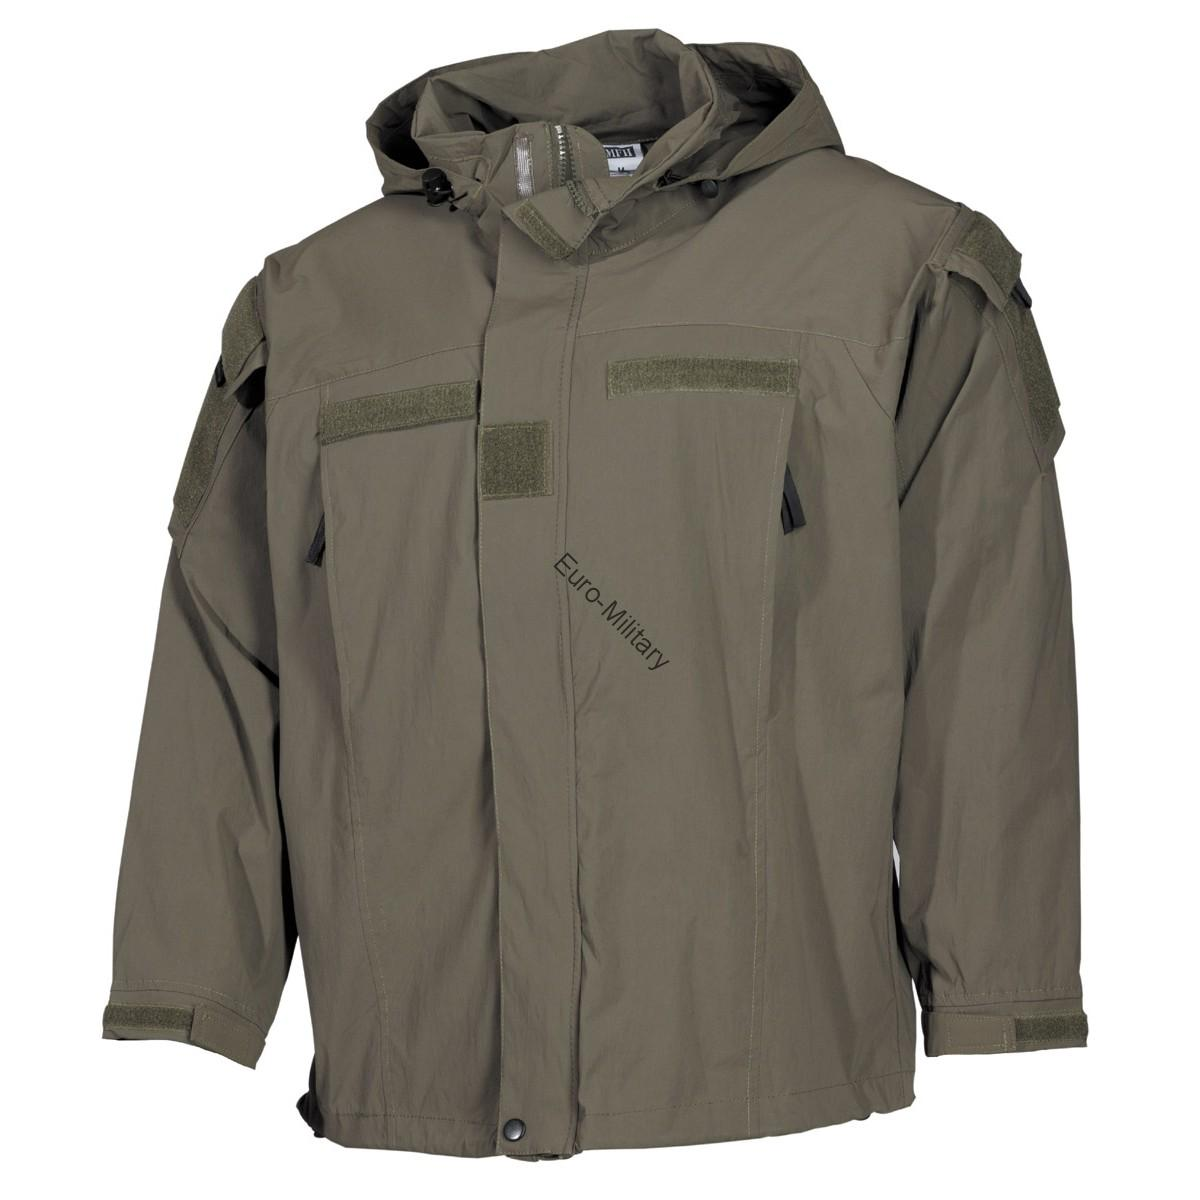 Tactical Military Soft Shell Waterproof Jacket GEN 3 - OD Green